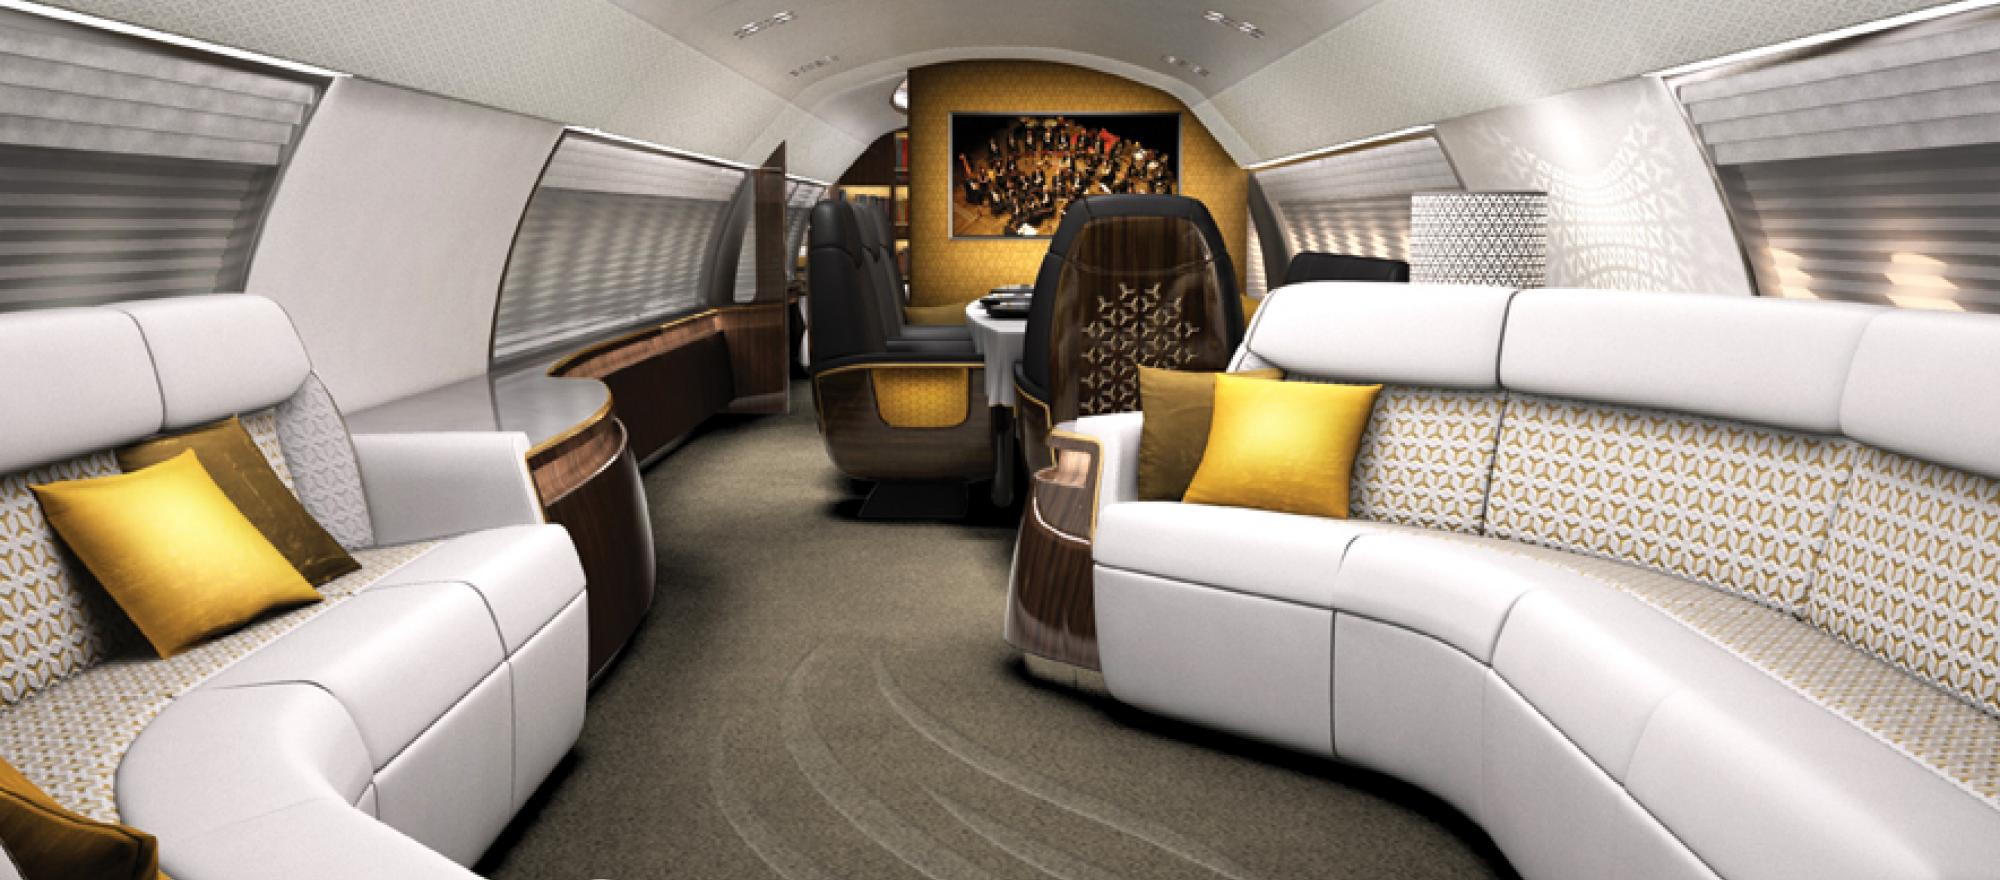 The latest Avro Business Jet (ABJ) executive version of the Avro RJ regional